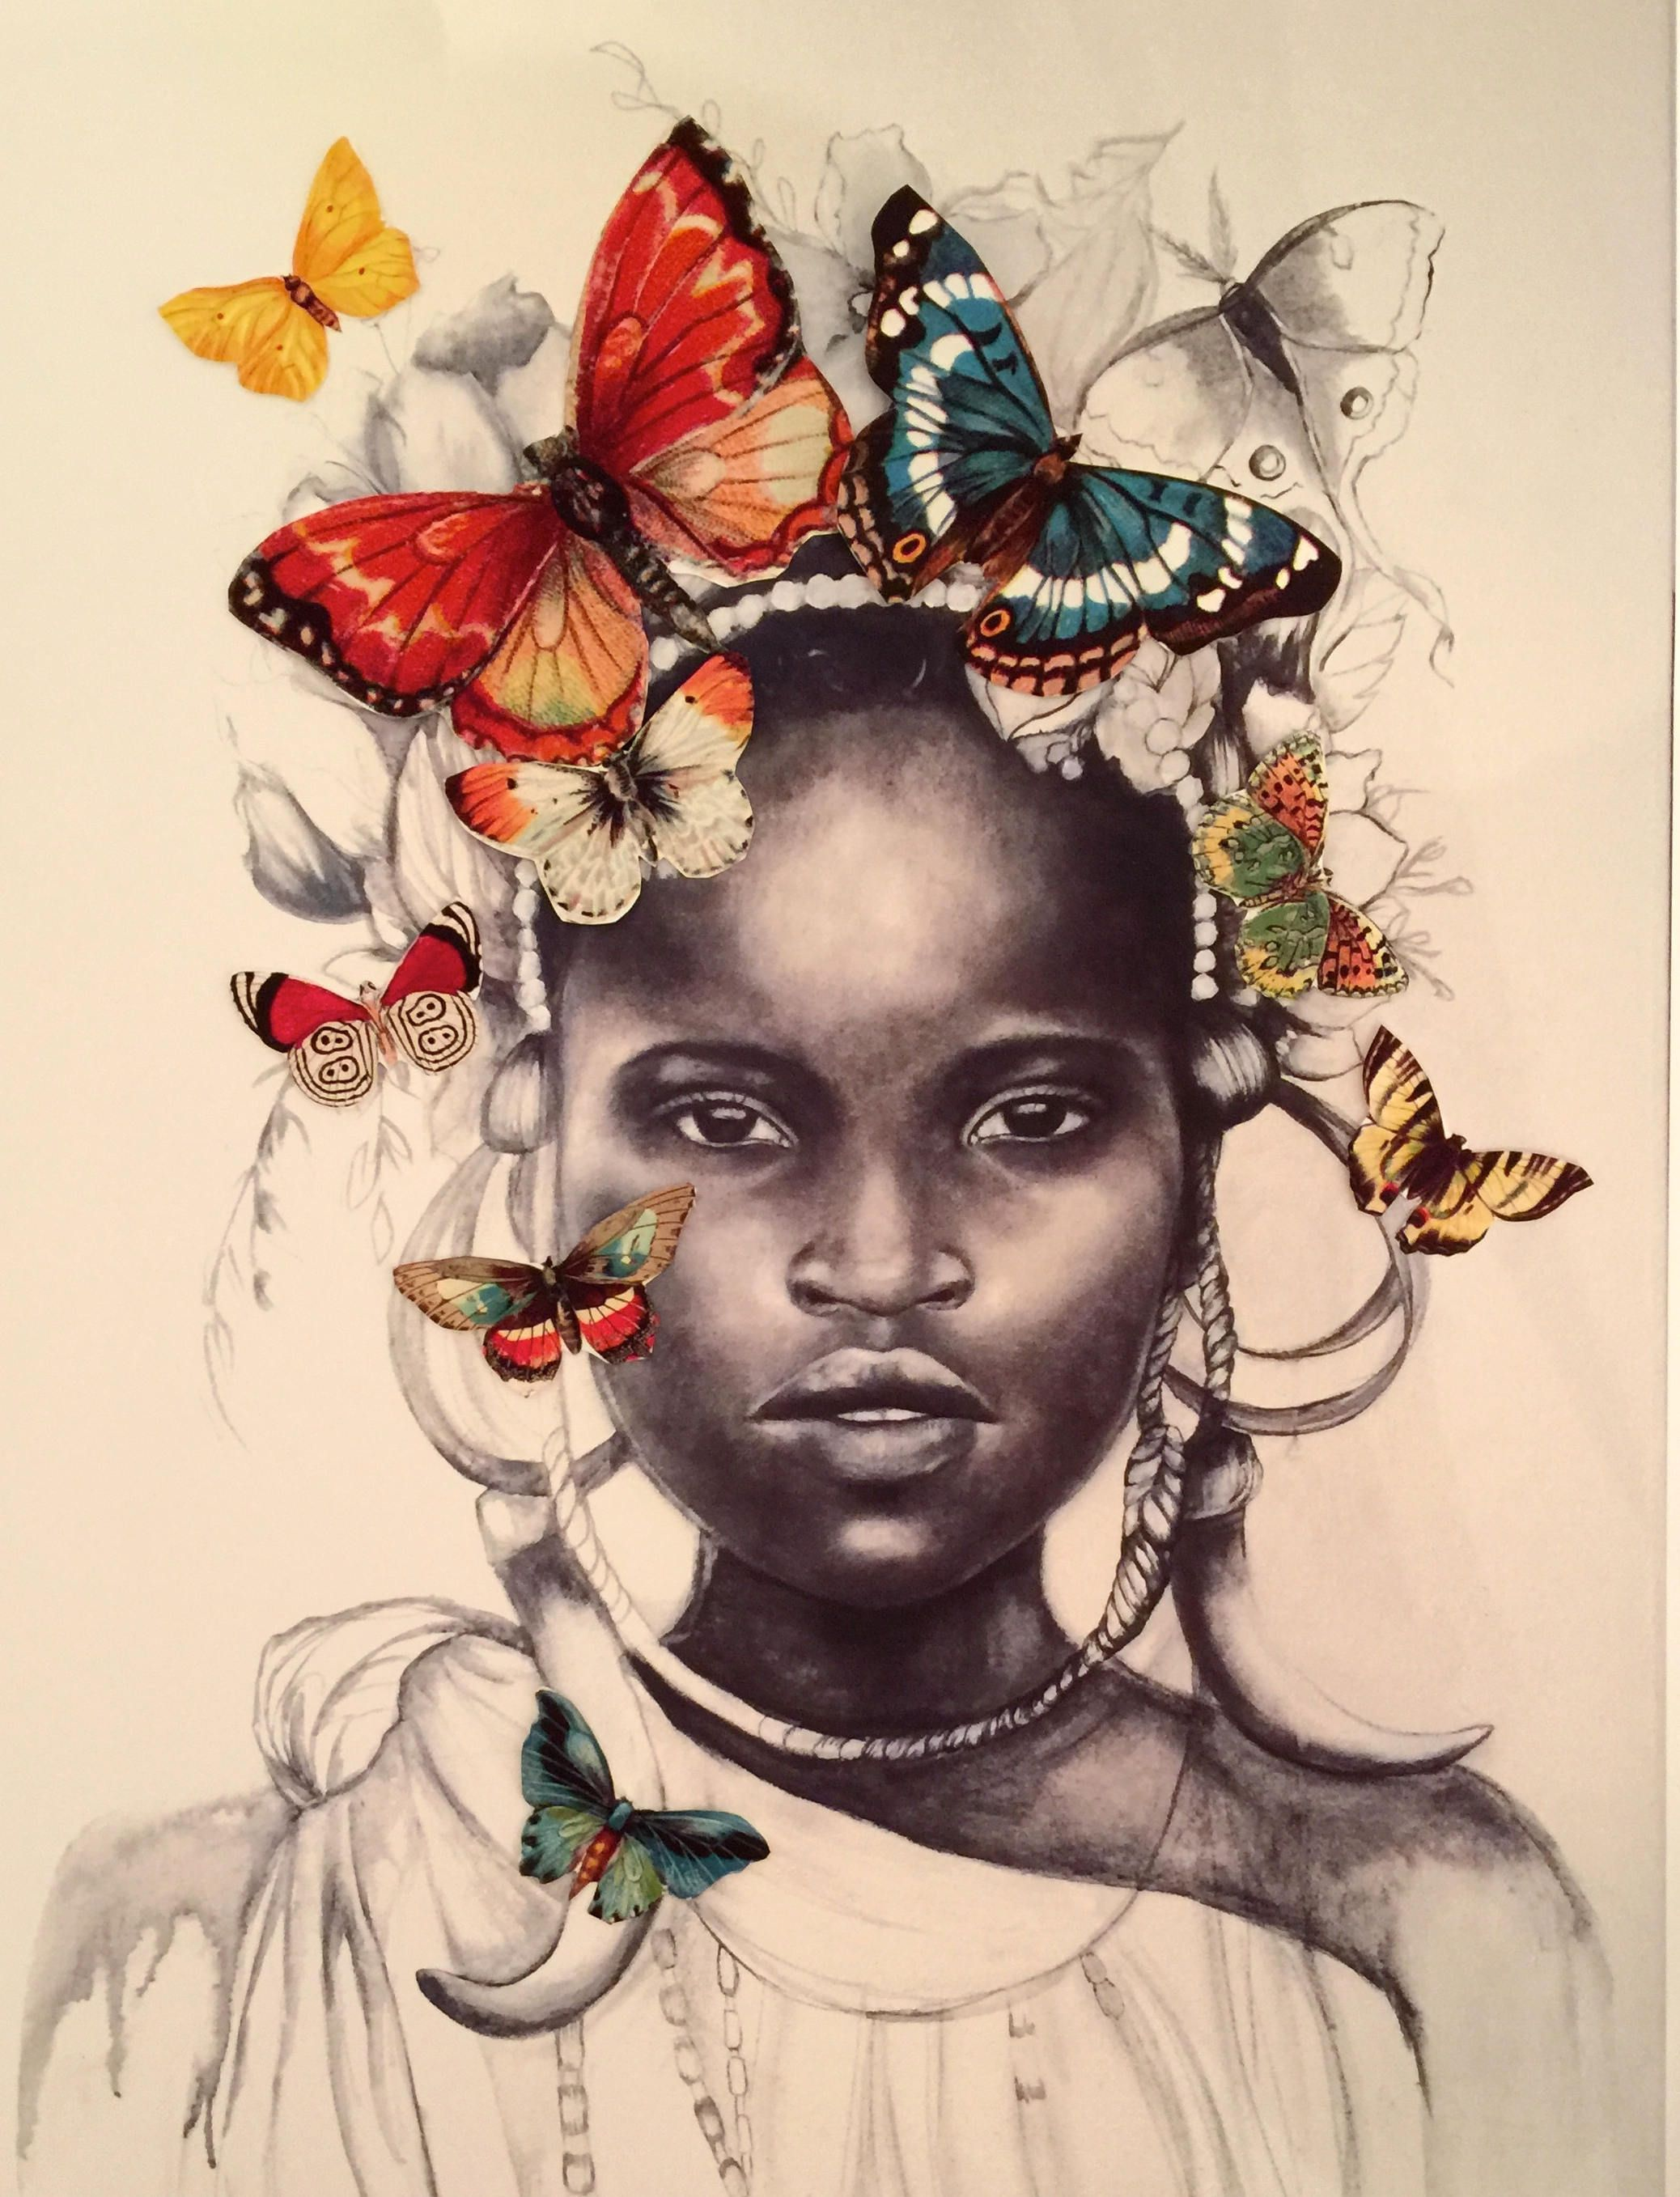 Female empowerment,art print ,drawing, love, portrait artwork ,claudia tremblay african girl with butterflies